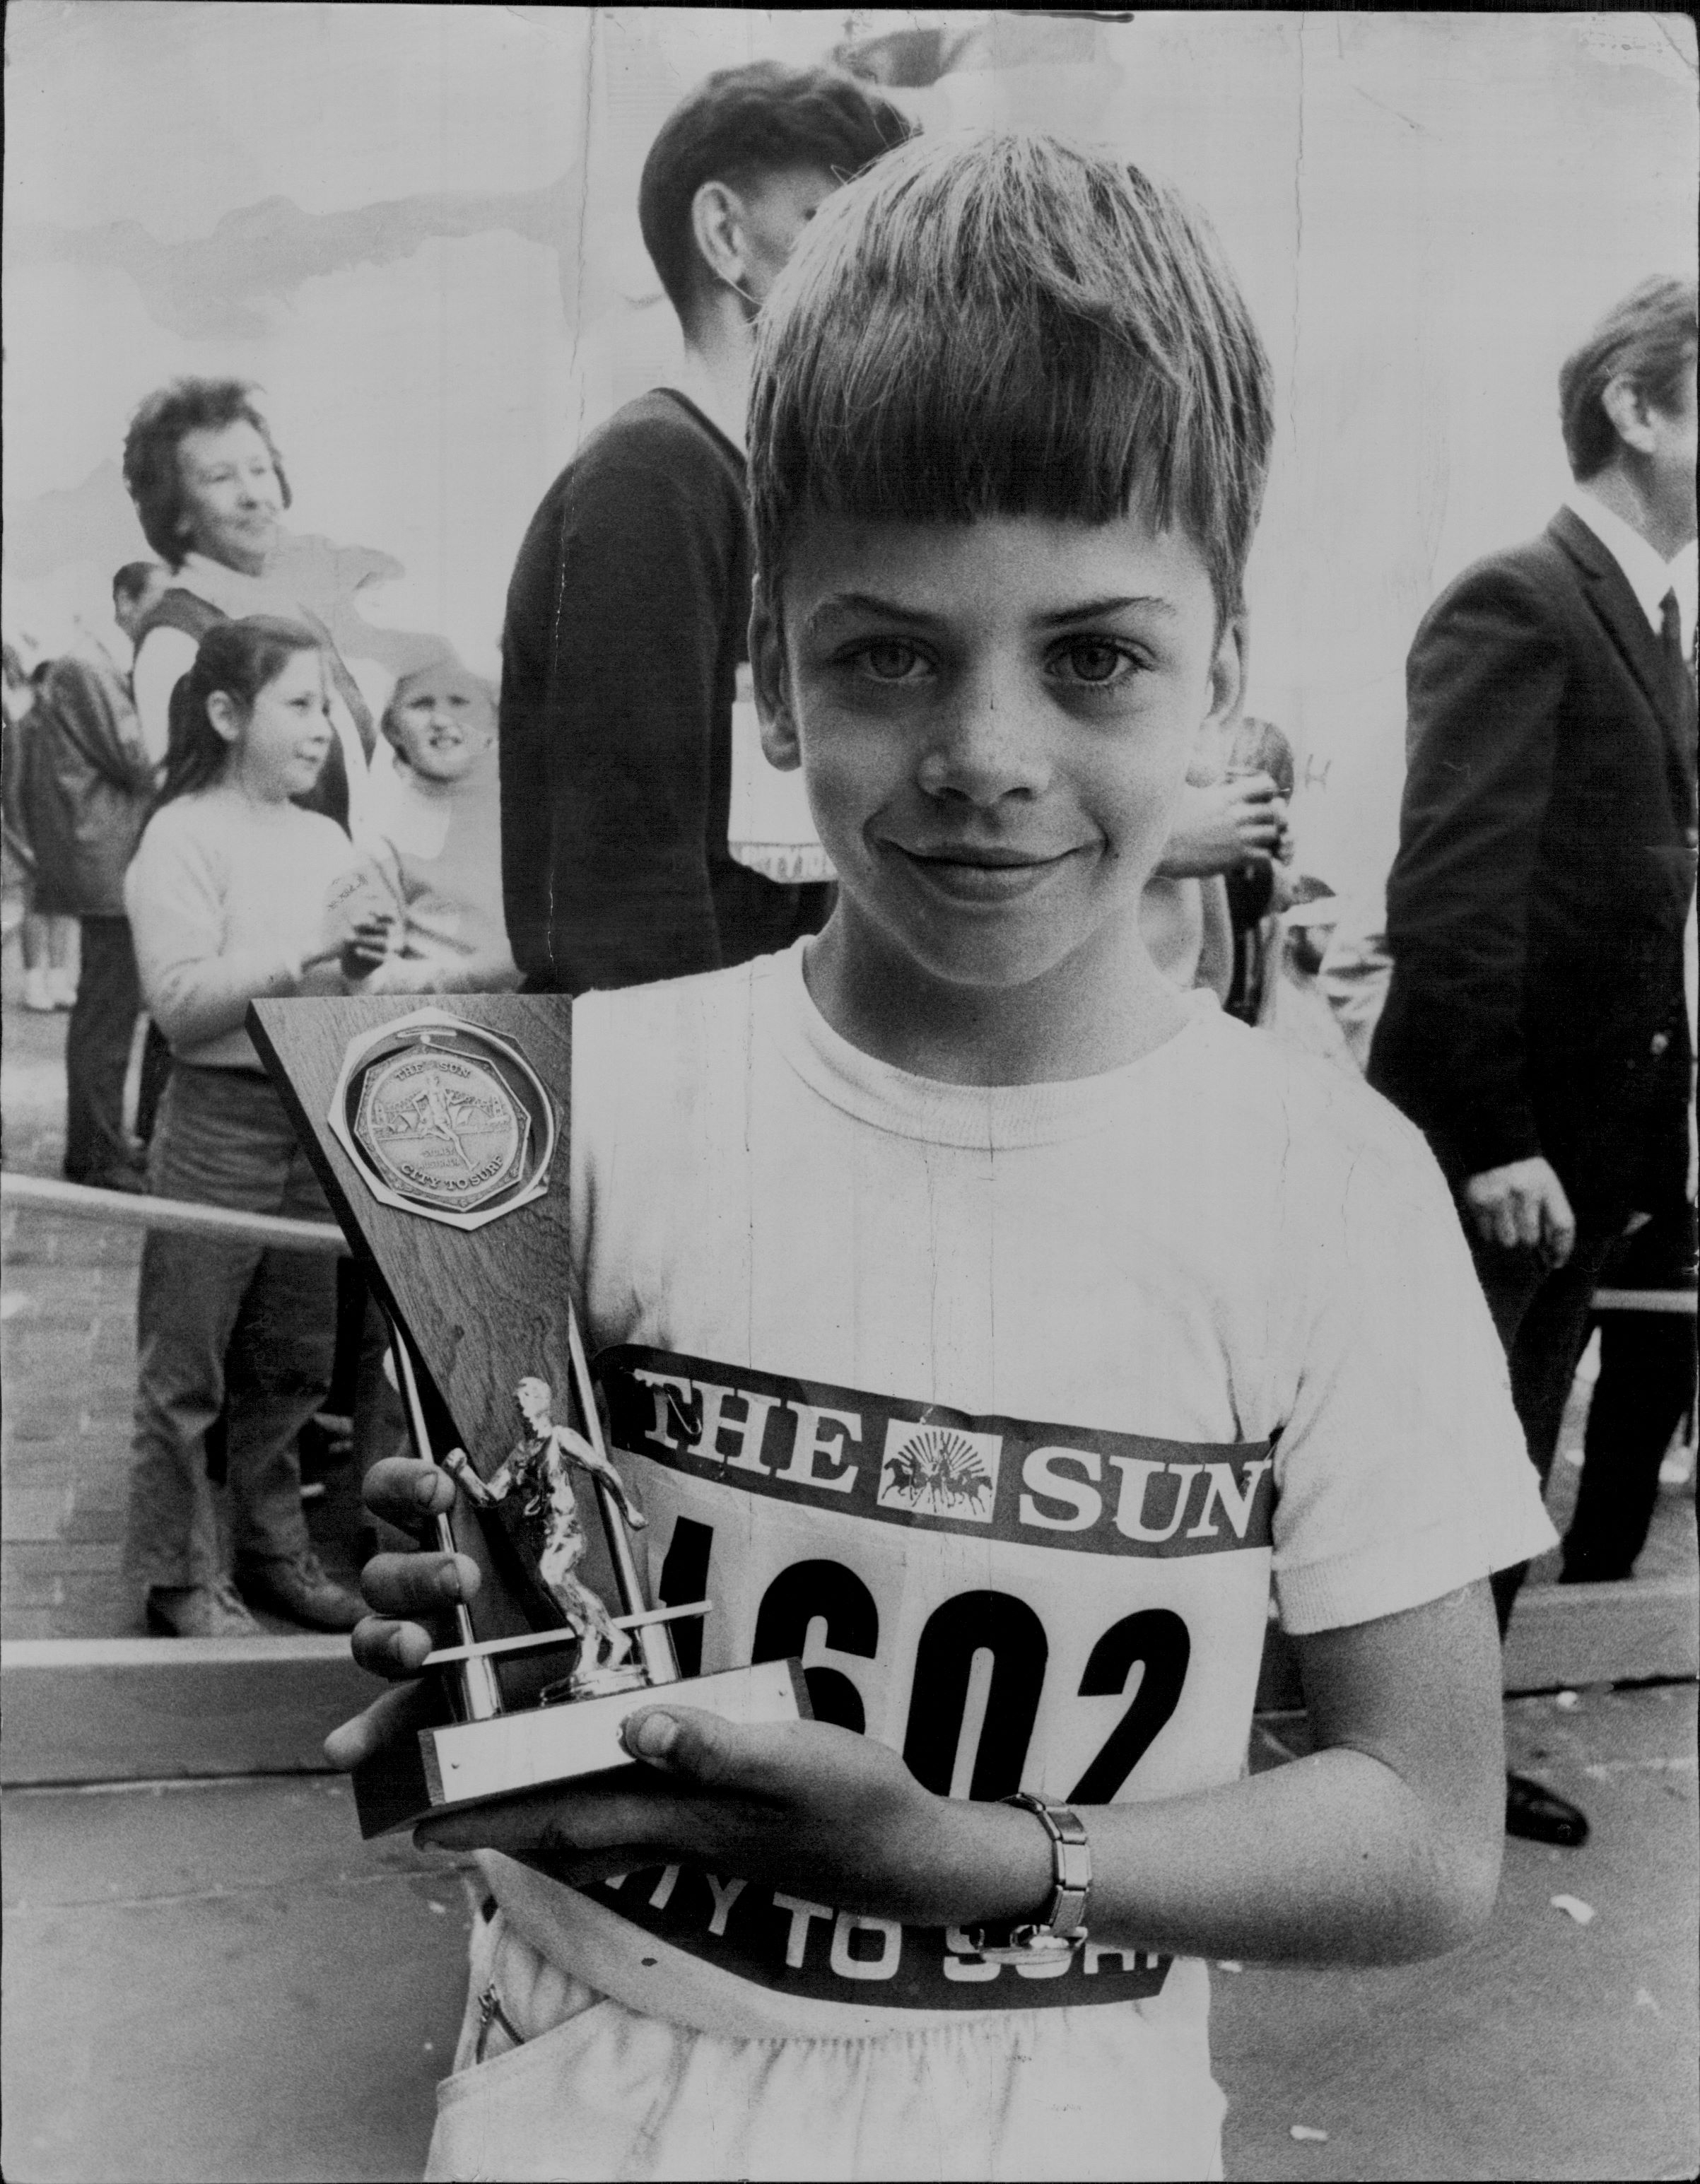 David Smith holding his trophy at the finish line of City2Surf in 1971.